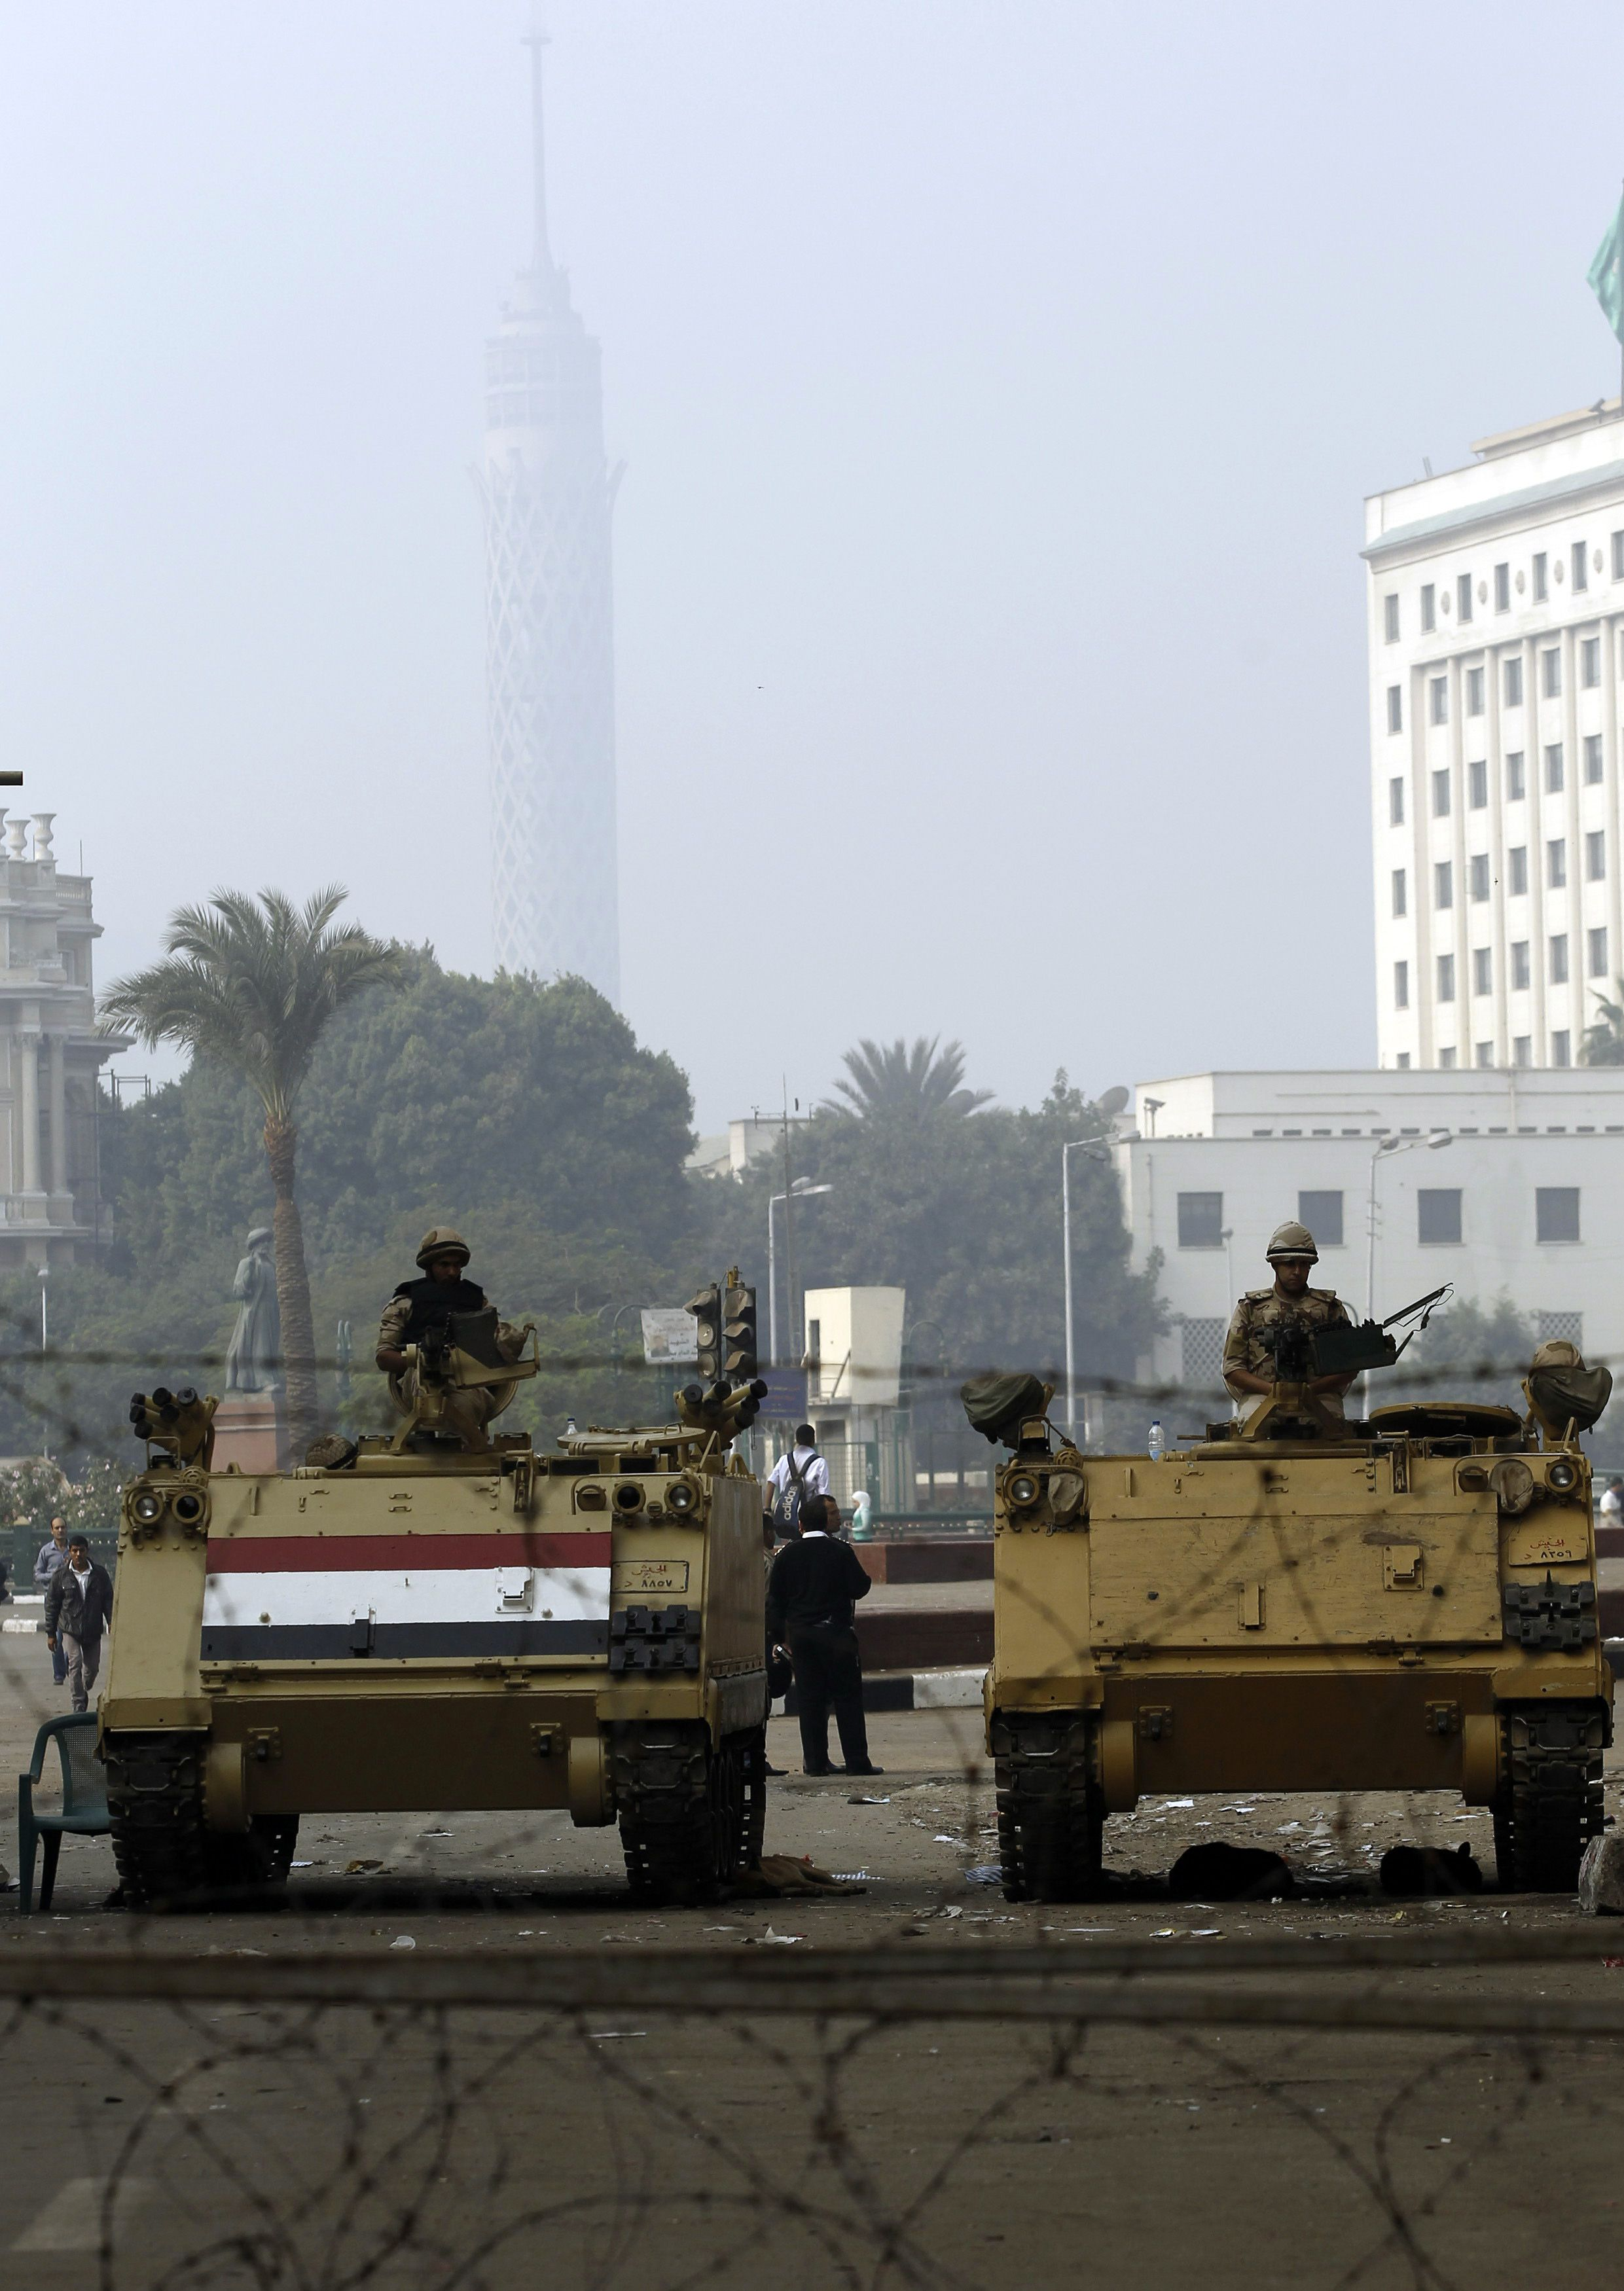 Egypt reopens Cairo's Tahrir Square to traffic